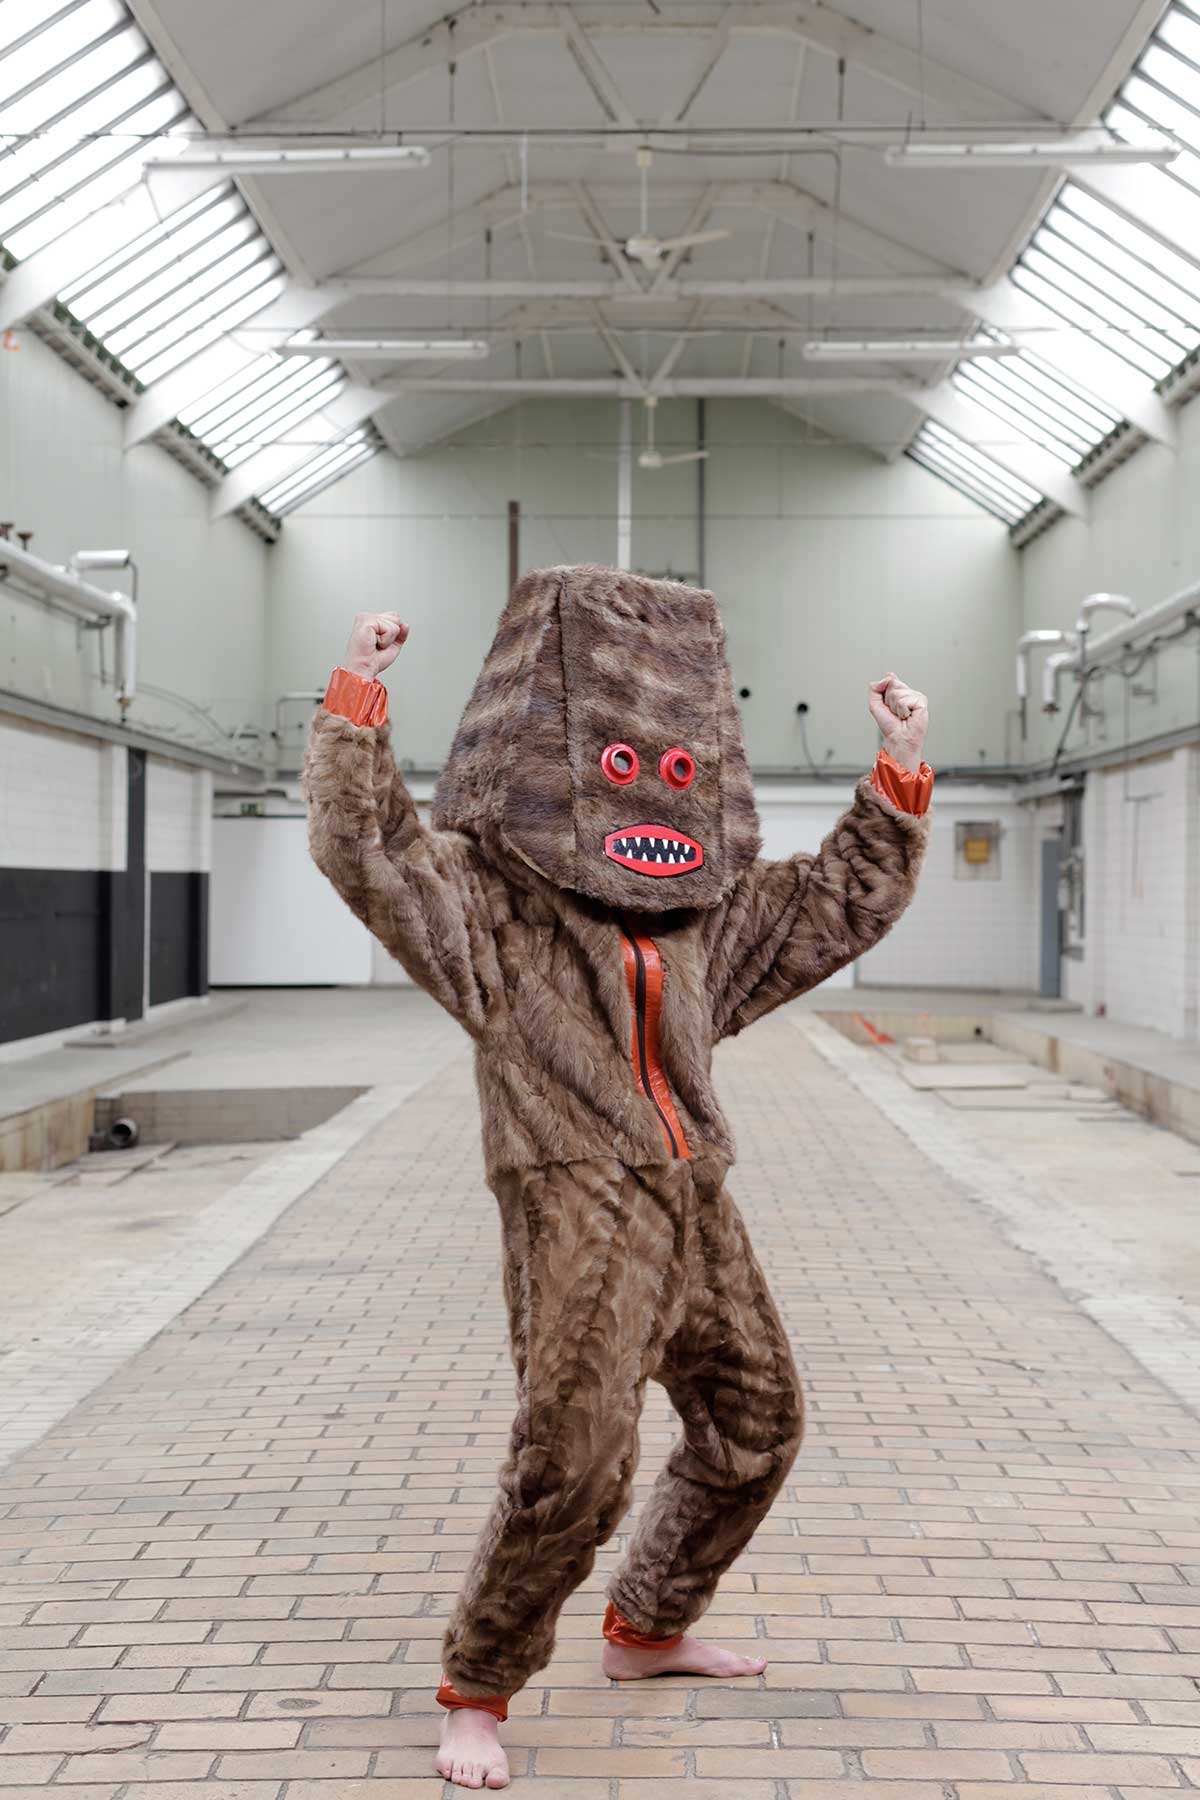 The Monster, The Second Self Laboratory Jan Pieter Kaptein | Yellowtrace